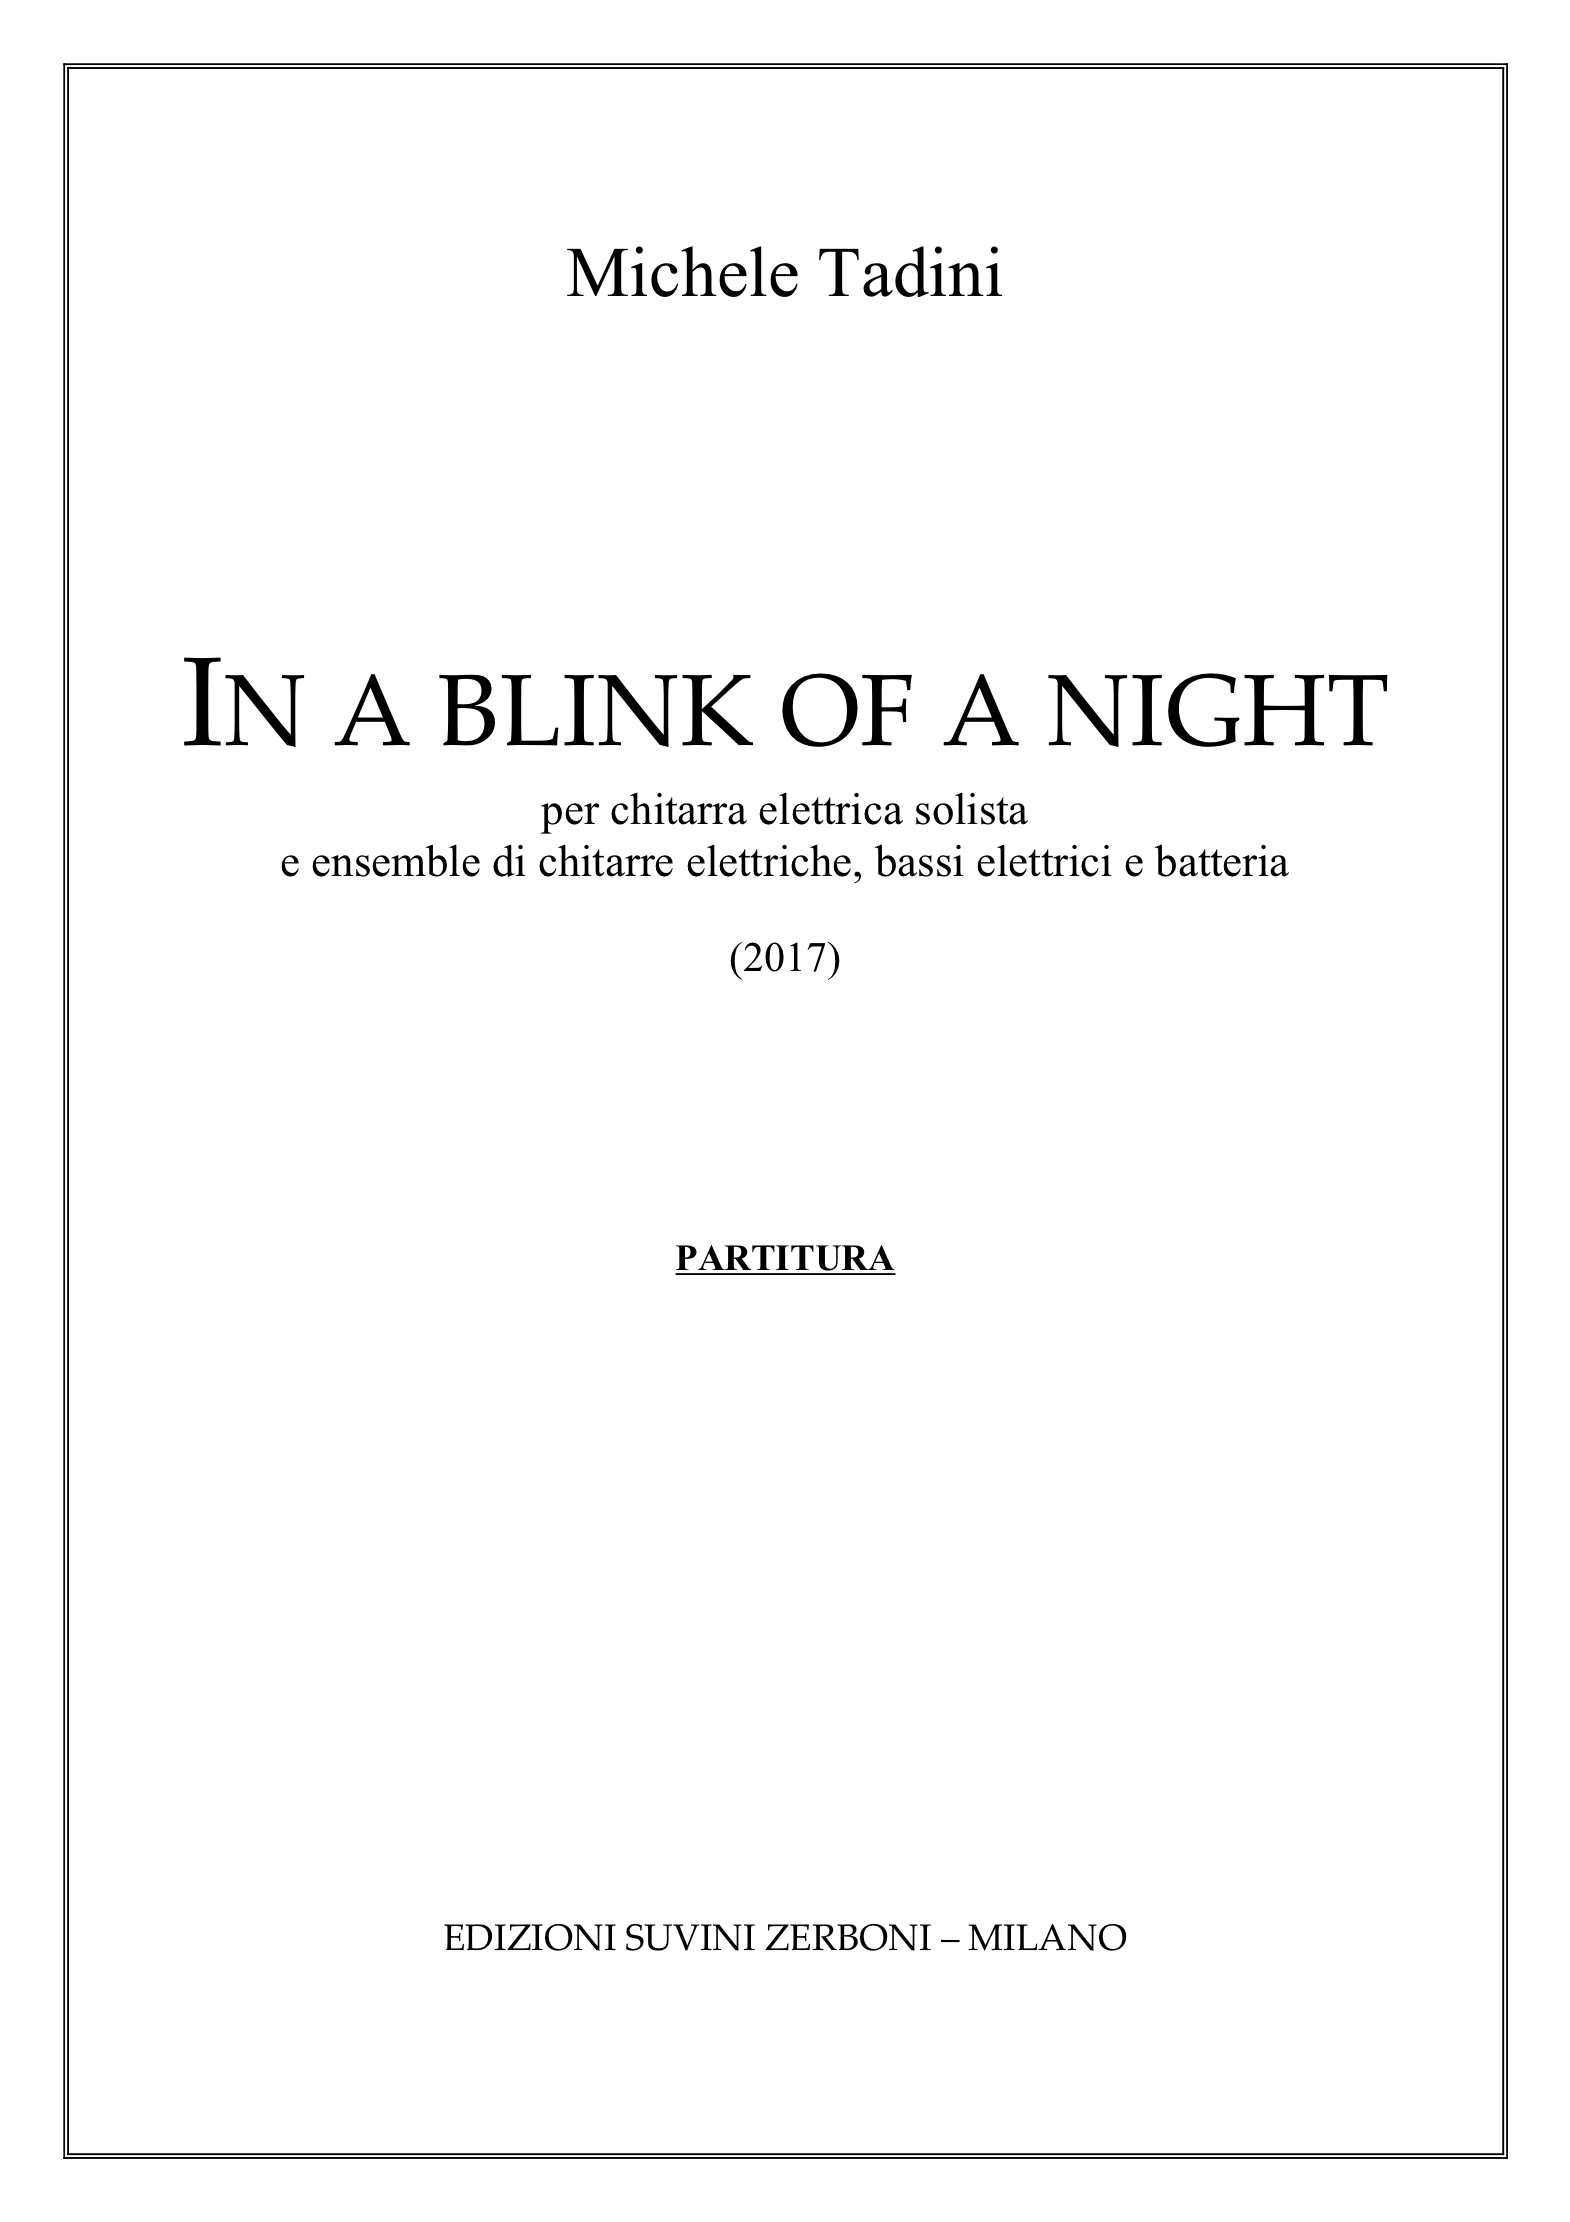 in a Blink of a night_Tadini 1